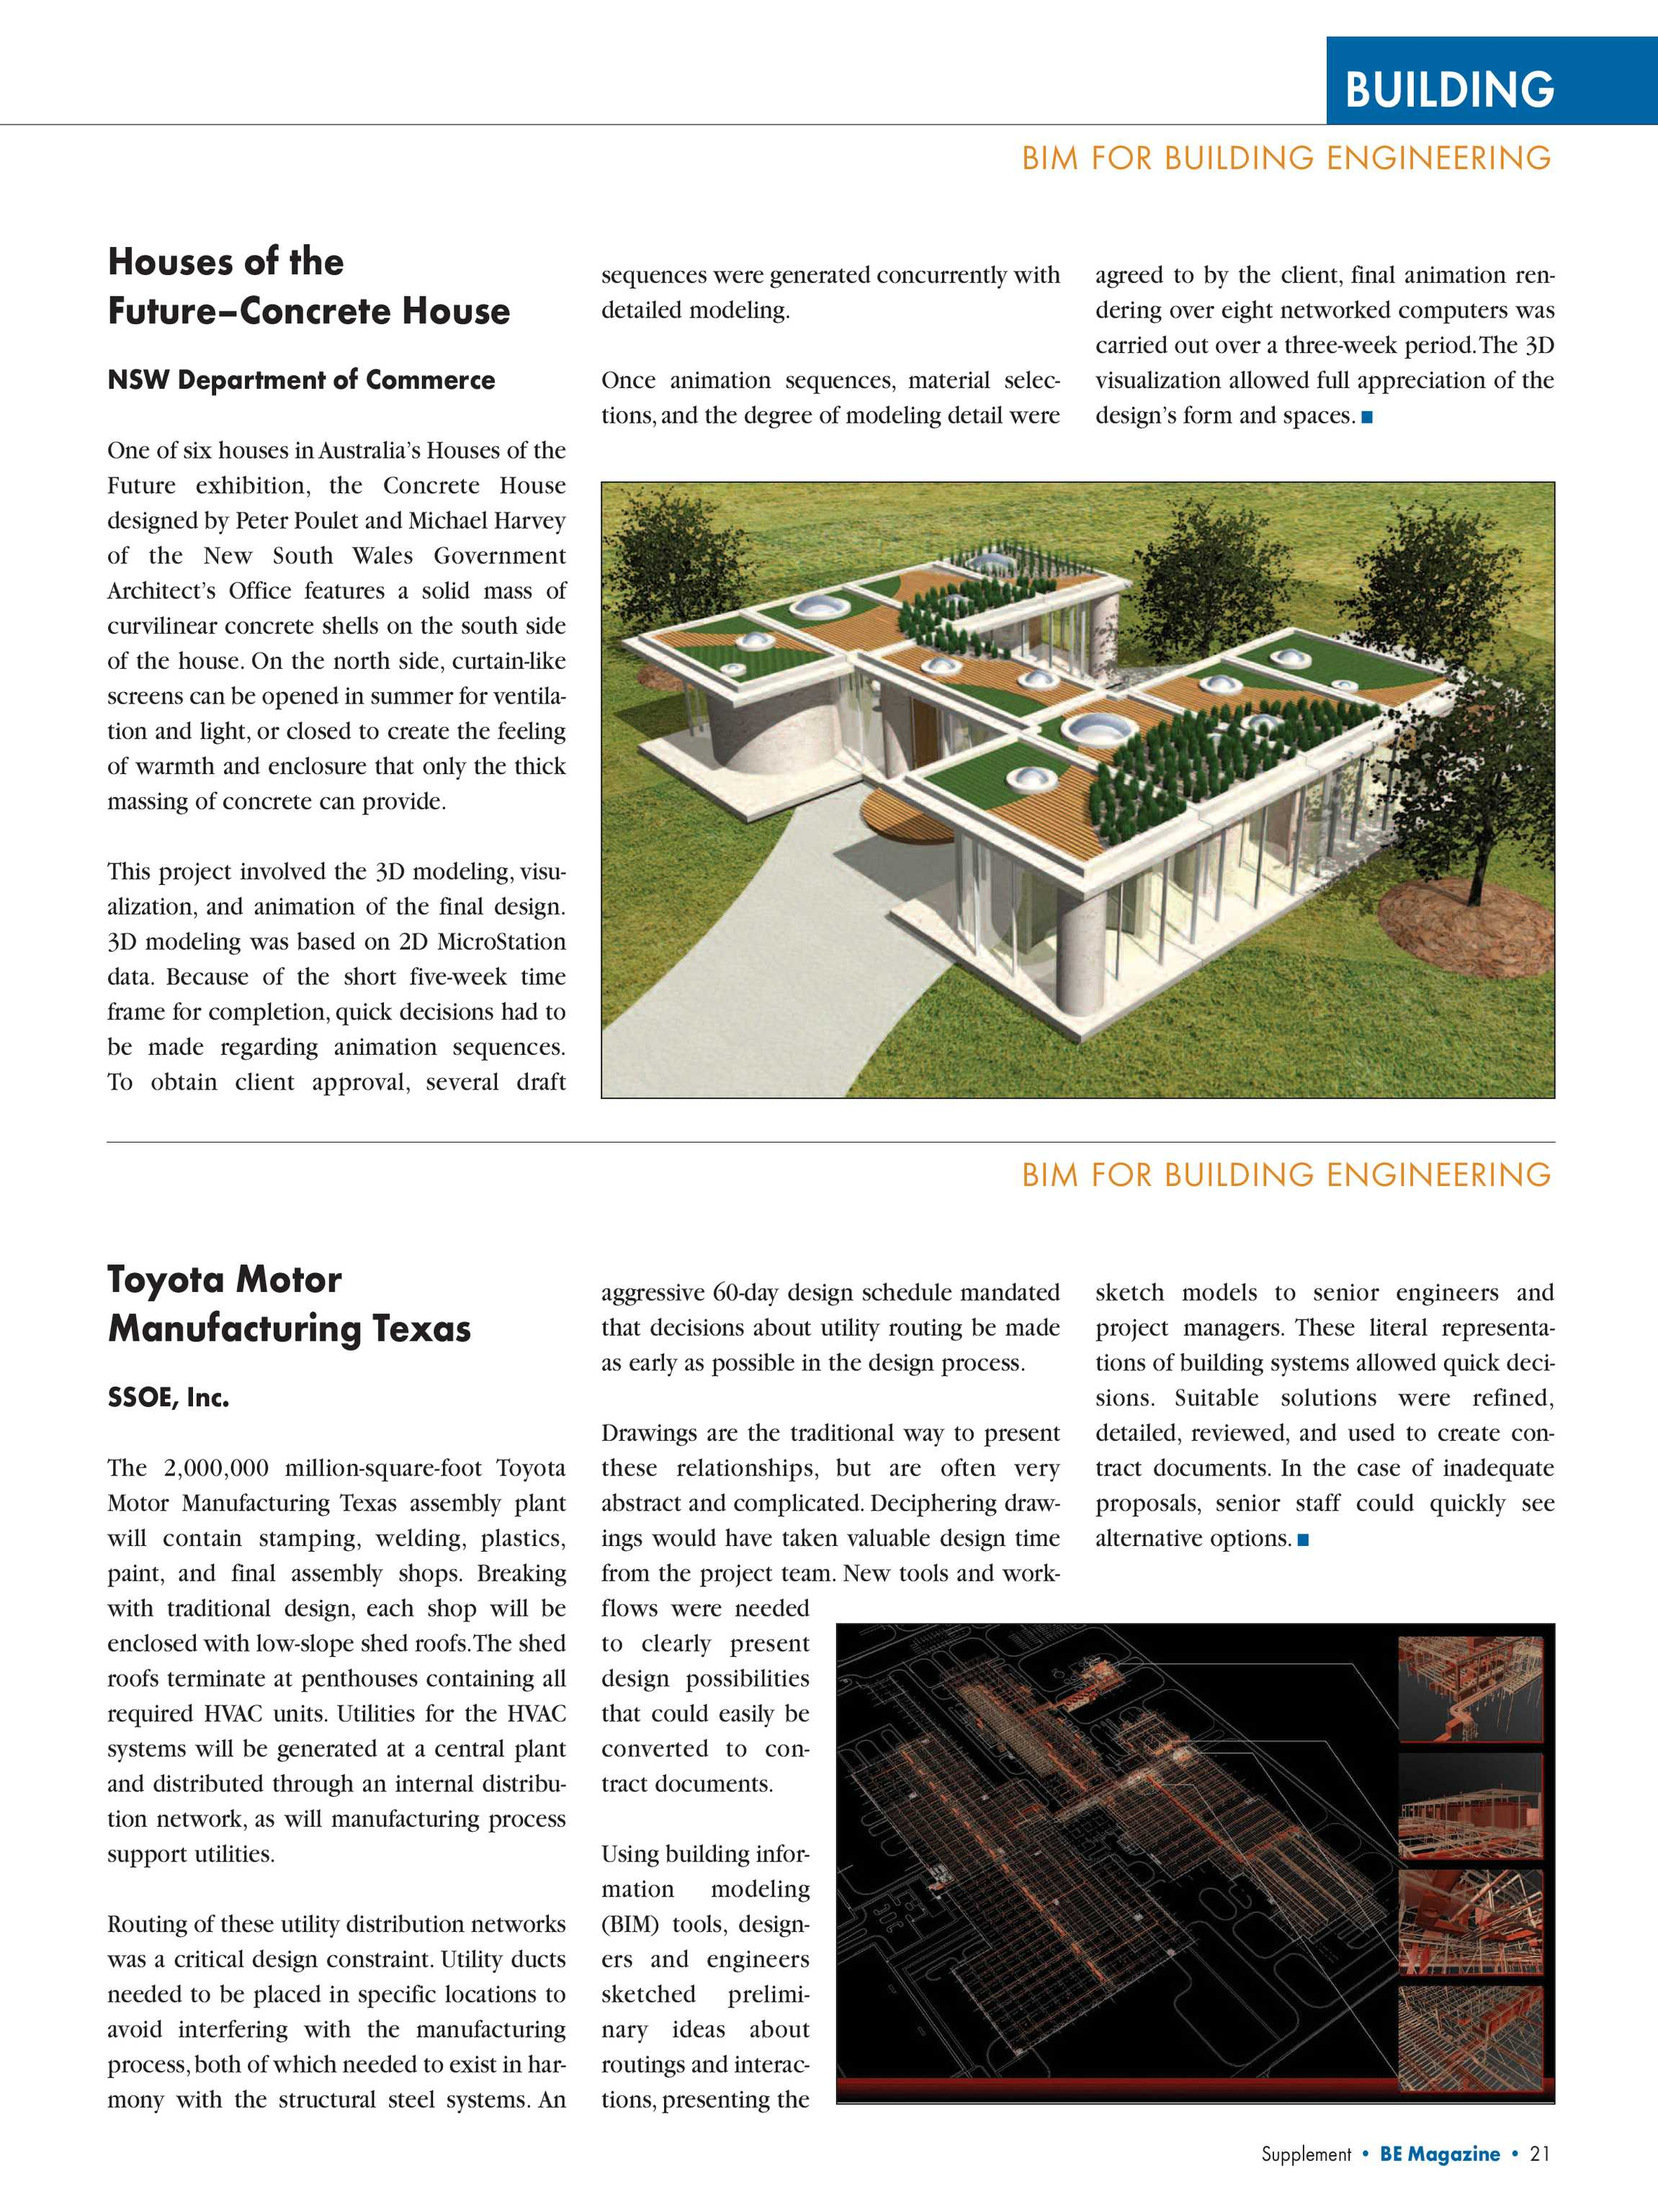 Year In Infrastructure 2005 - page 21